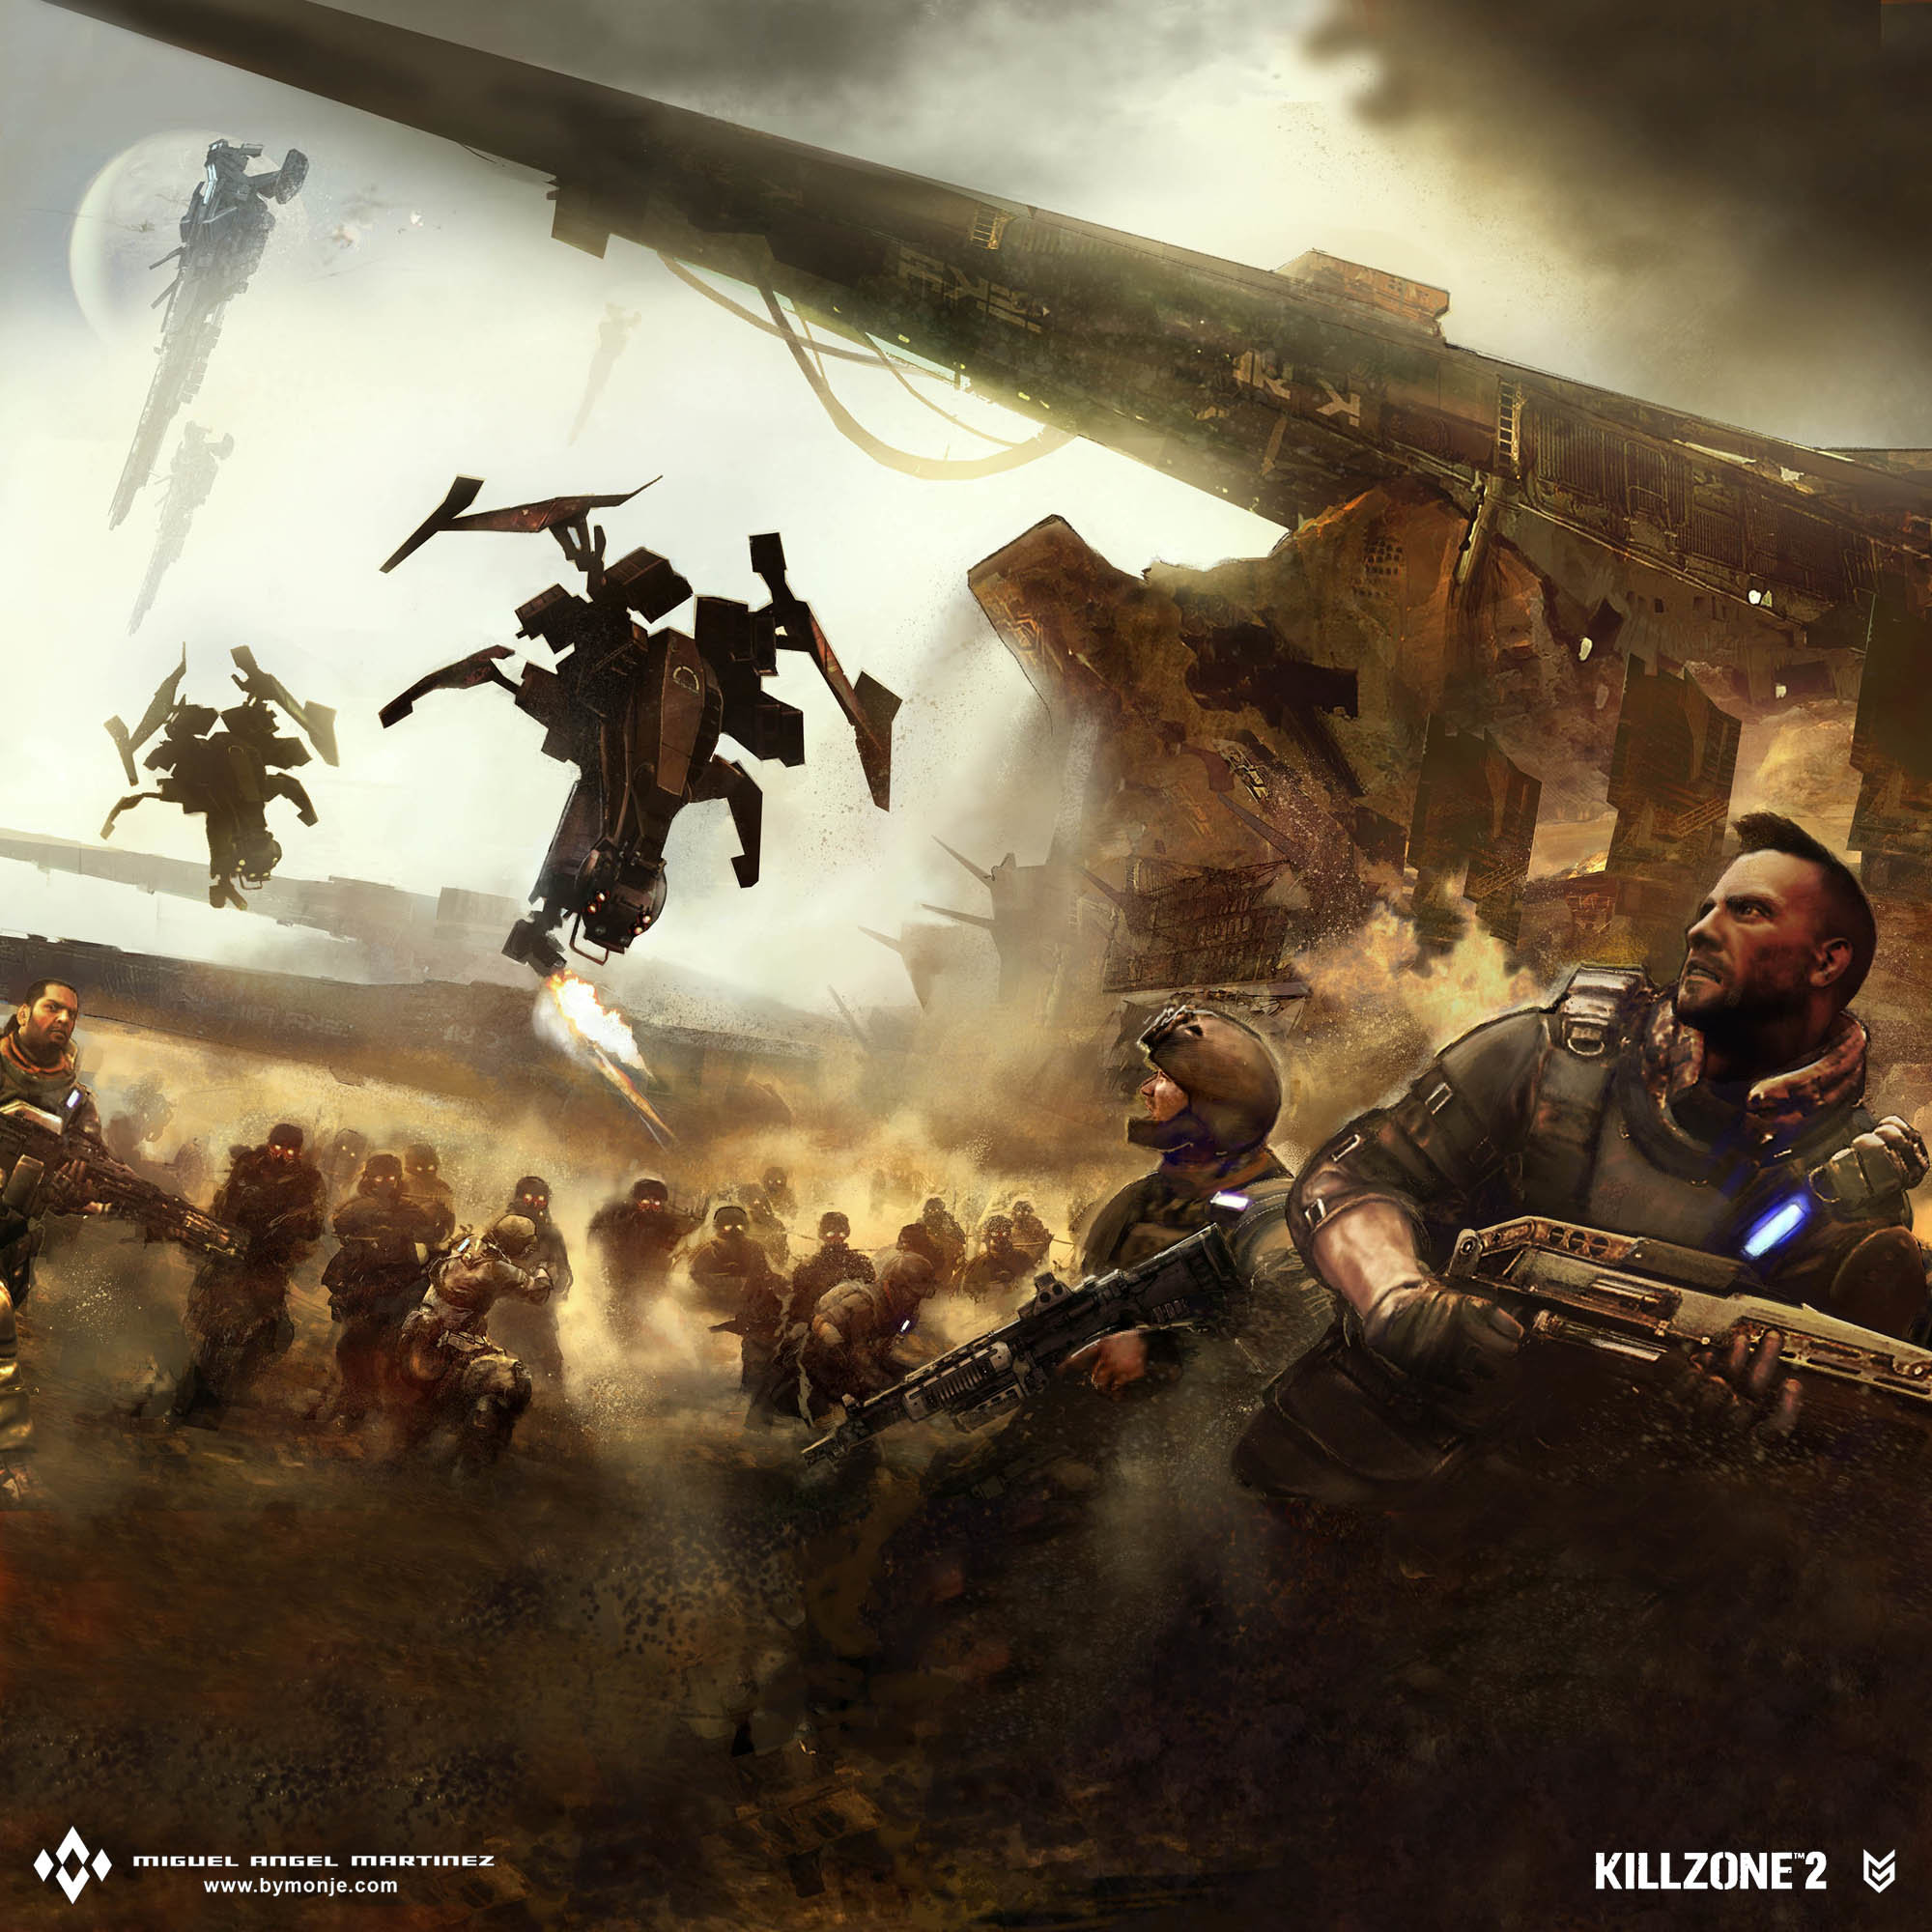 killzone 2 battle poster concept art miguel bymonje